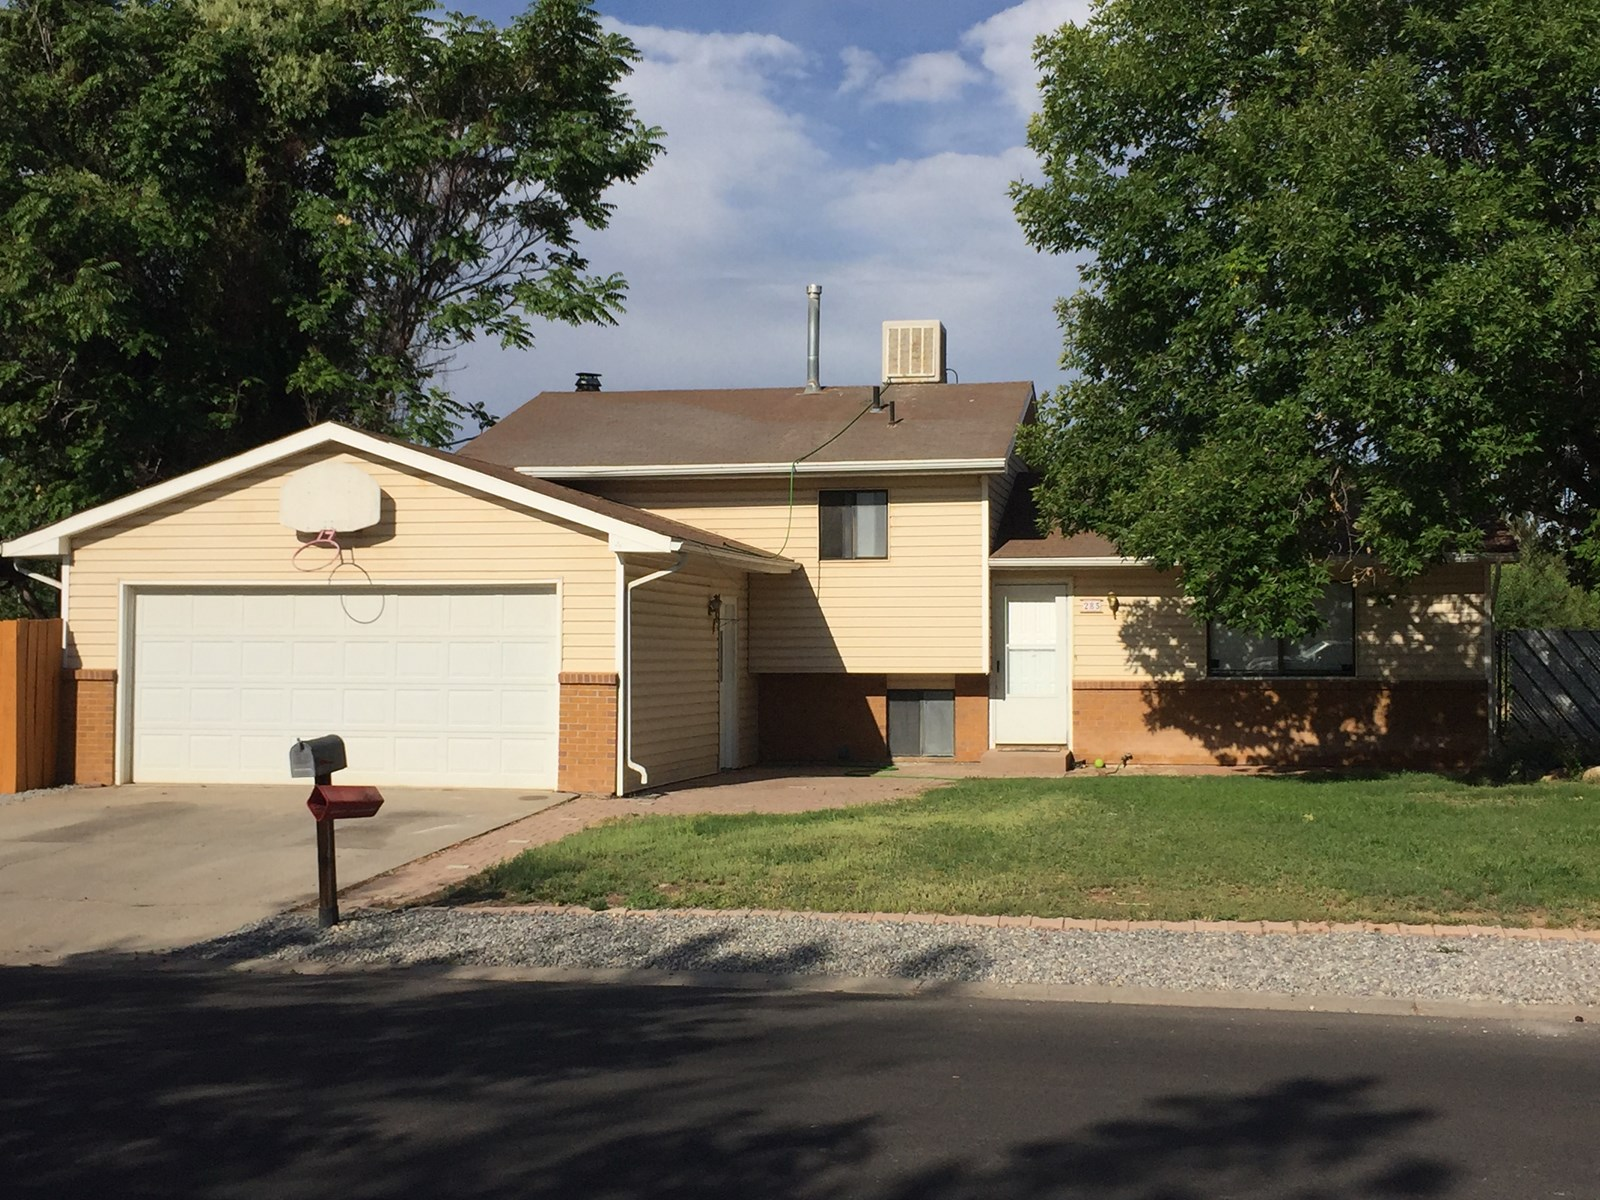 Home for Sale in Grand Junction - Move In Ready